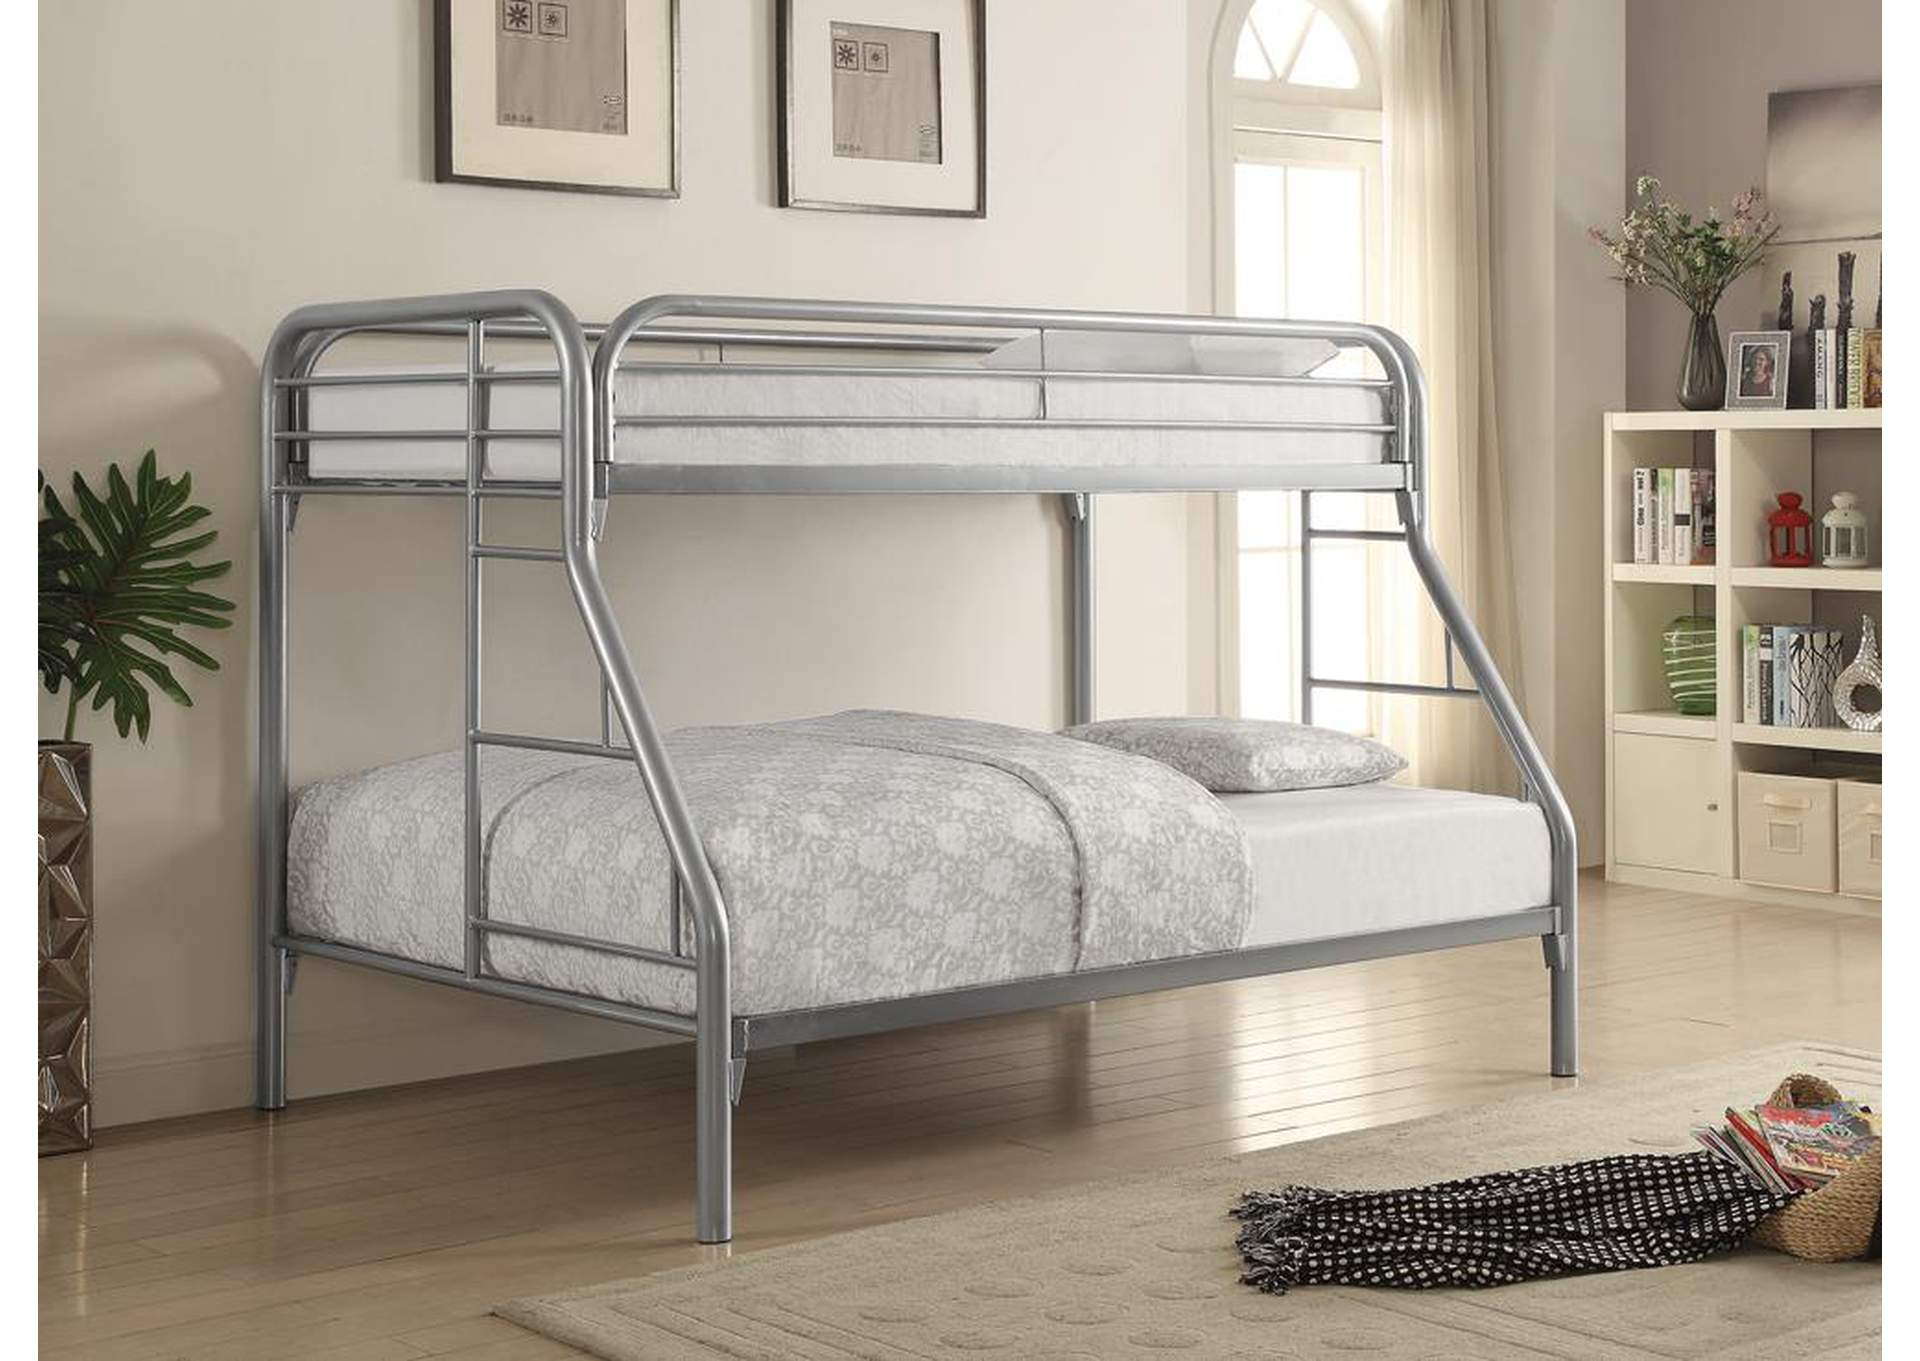 Silver Twin/Full Metal Bunk Bed,Coaster Furniture